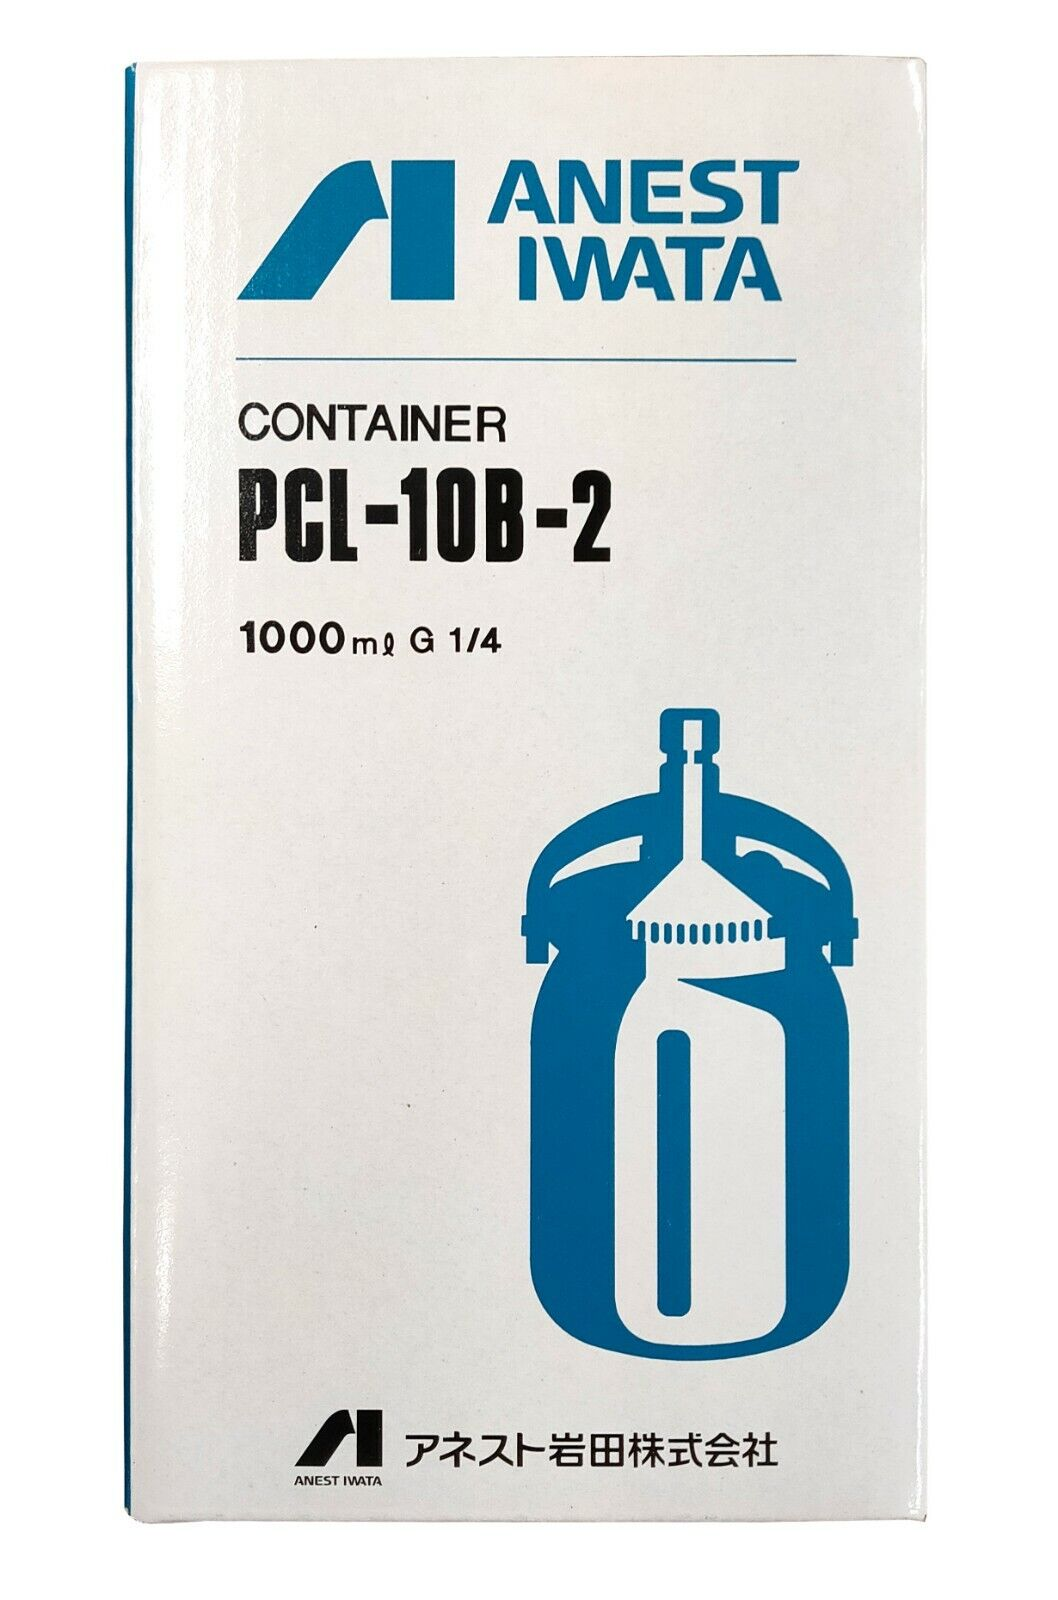 ANEST IWATA PAINT CUP 1000ml TYPE FOR MODEL W-101,71,61 PCL-10B-2